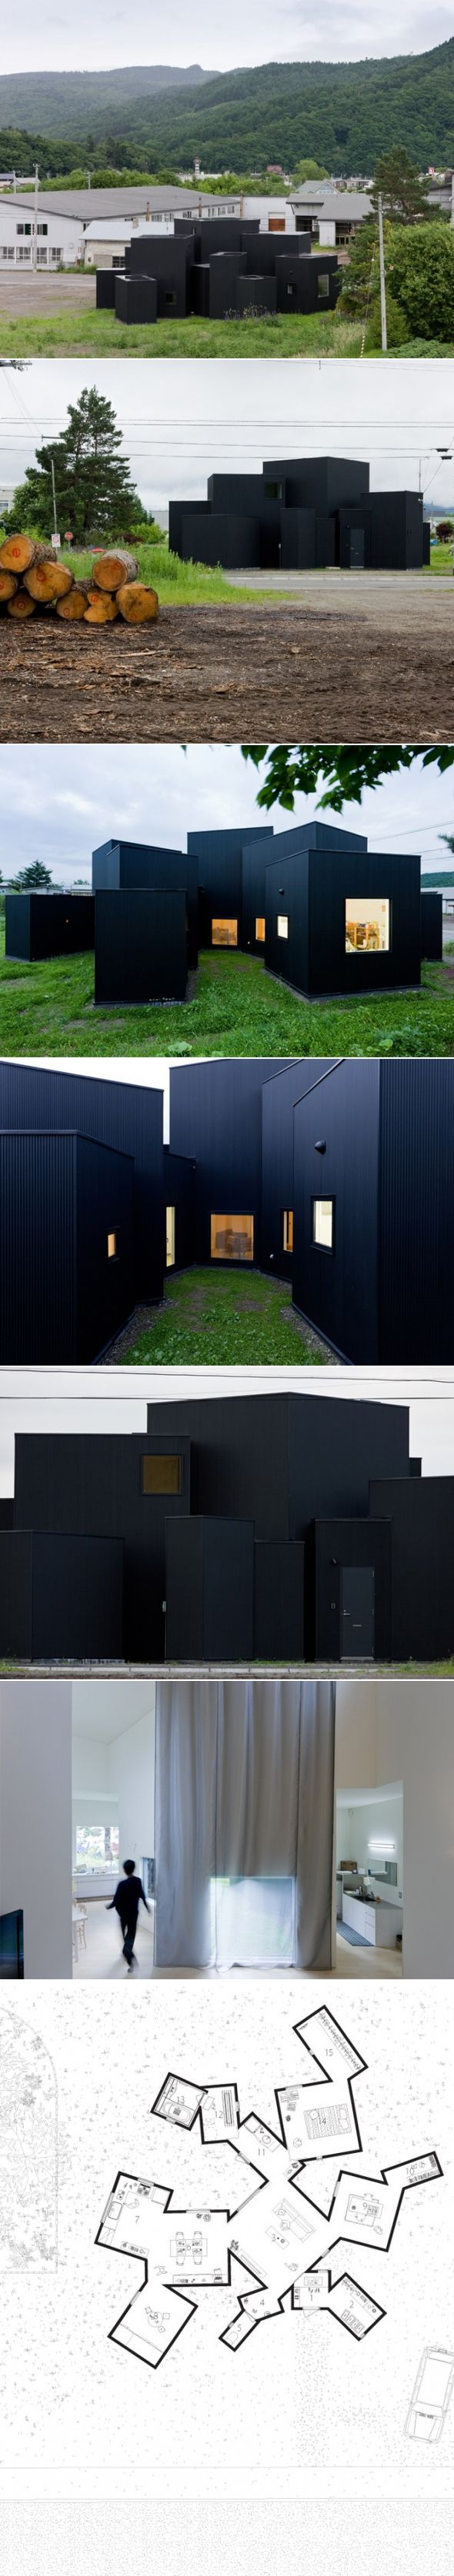 House O par Jun Igarashi Architects Well isn't that just #interesting